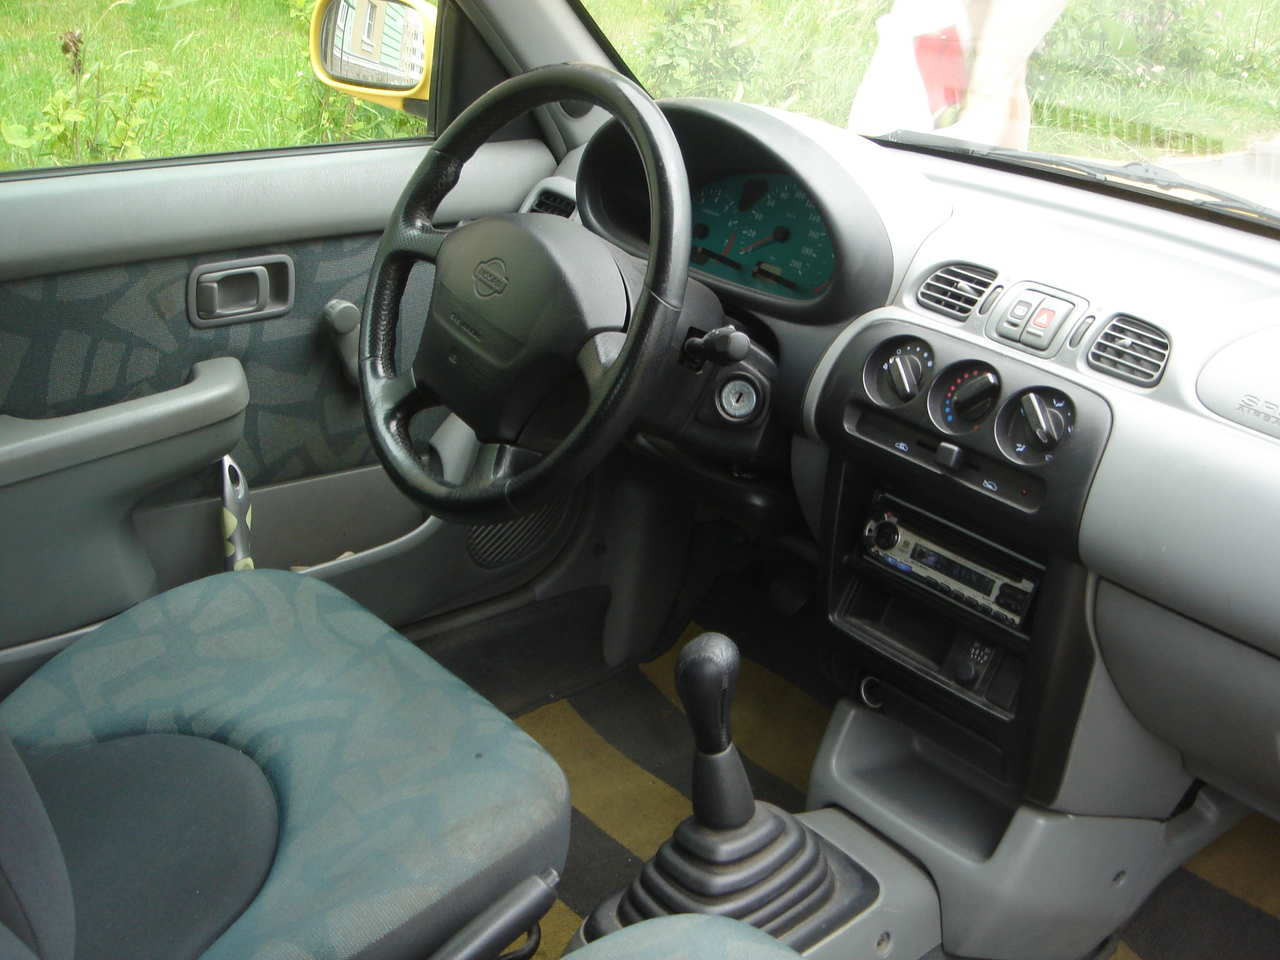 2000 nissan micra photos 1 0 gasoline ff manual for sale rh cars directory net 2001 Nissan Micra 2008 Nissan Micra